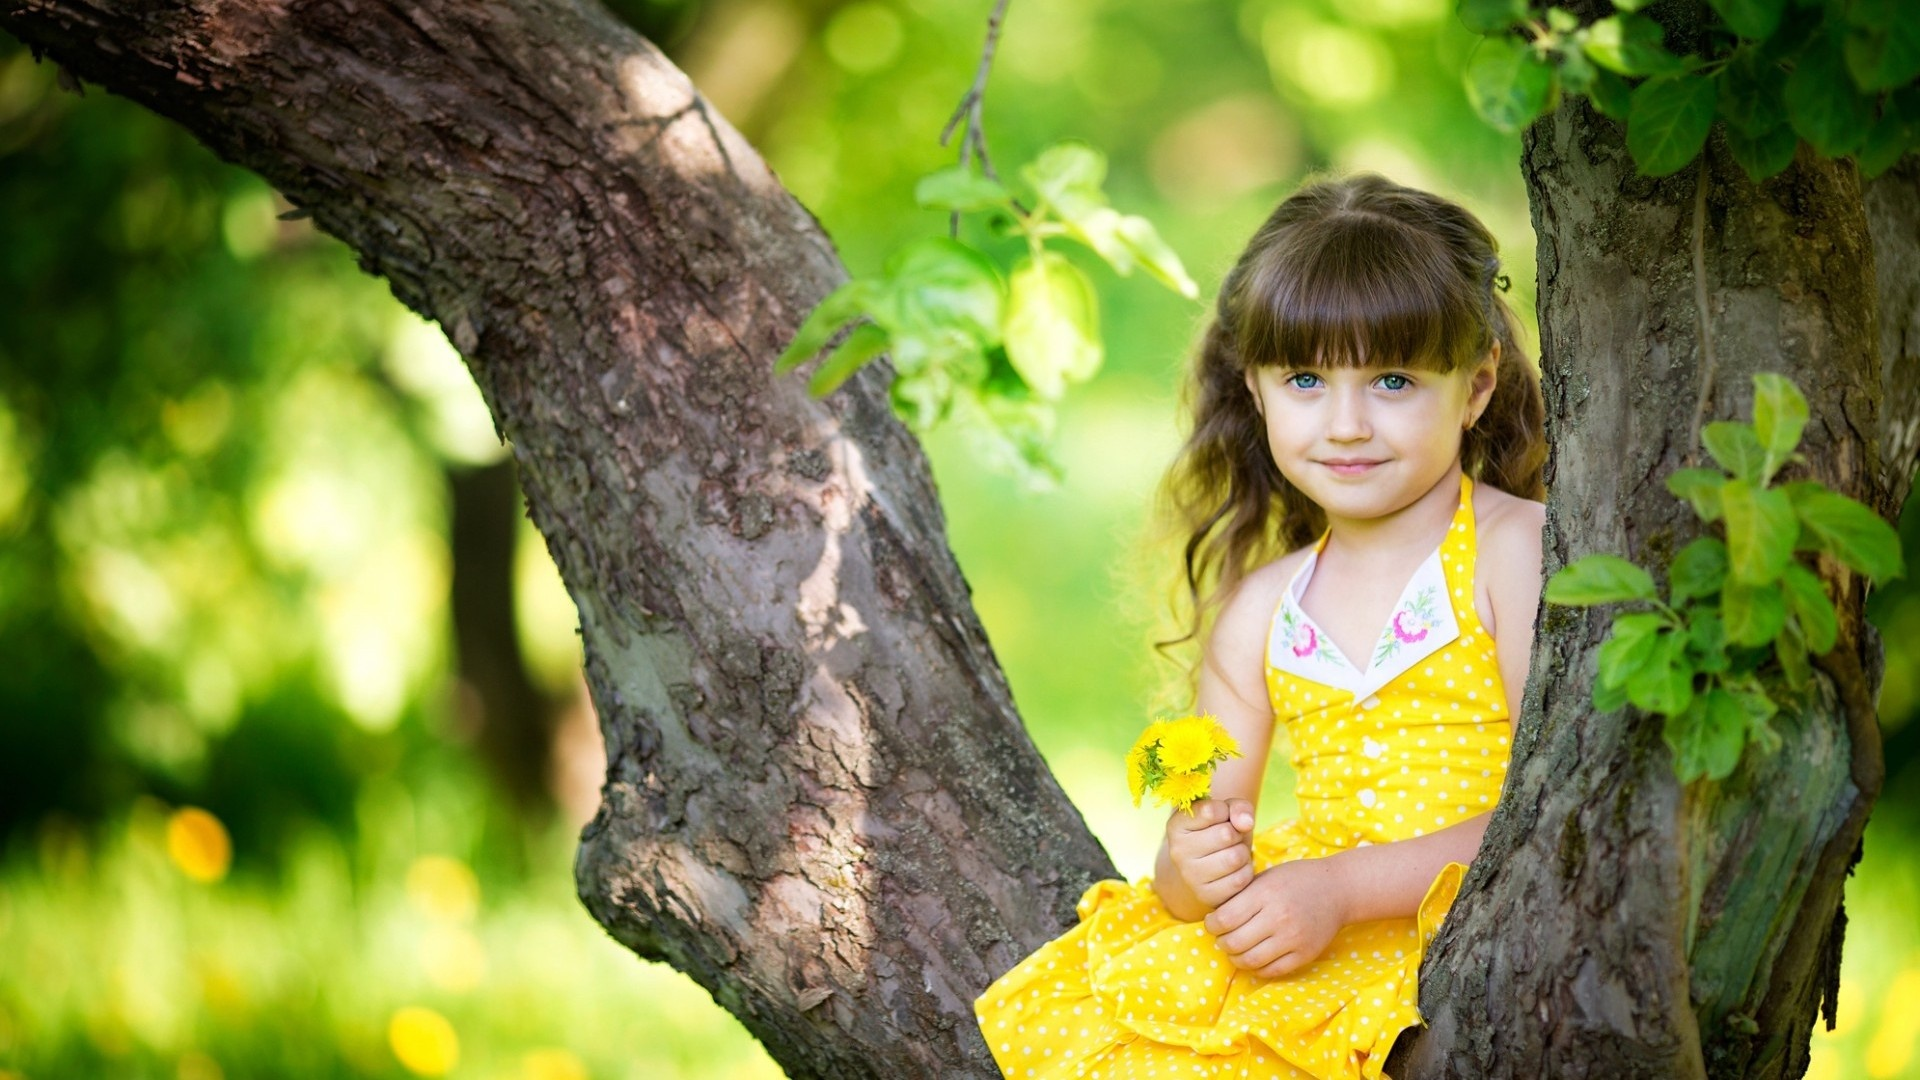 Cute Baby Girl HD Wallpapers 2015 1920x1080